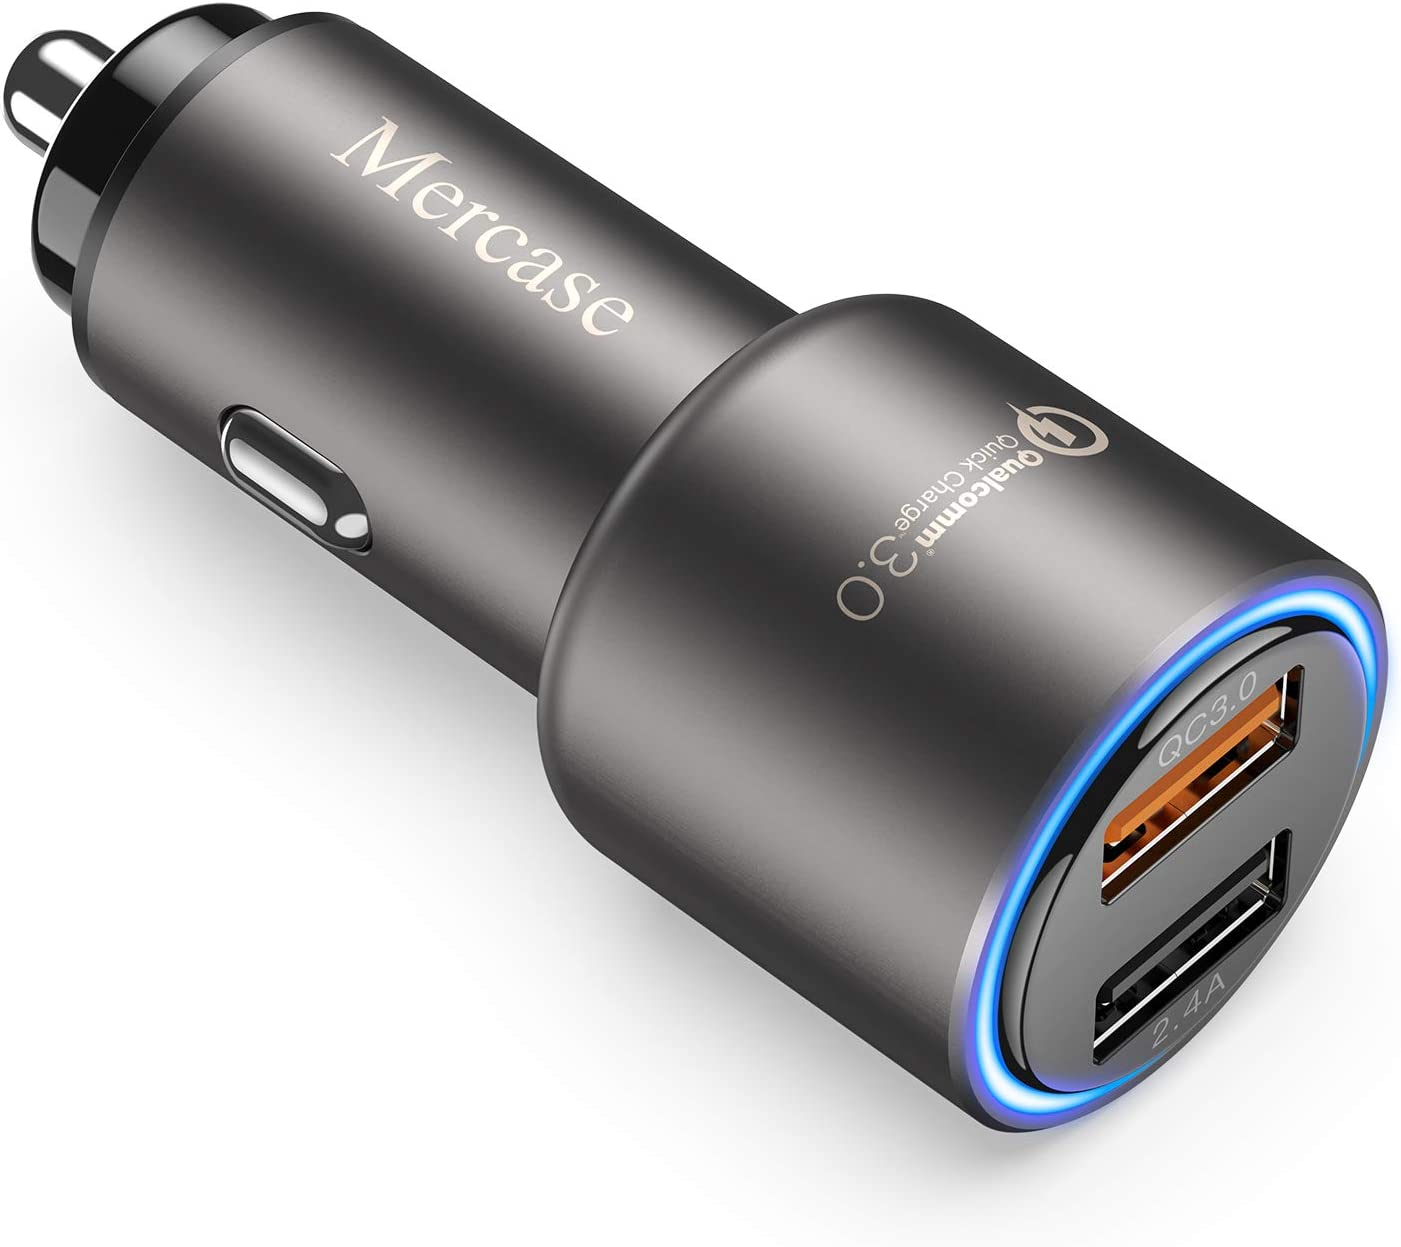 Space Grey Mercase 30W Metal Dual Ports USB Fast Car Charger Adapter,12V Car Phone Charger for iPhone Xs X Max XR 8 7 6S 6 Plus Samsung Galaxy S9 S8 S7 S6 Edge Note 9 8 Quick Charge 3.0 Car Charger